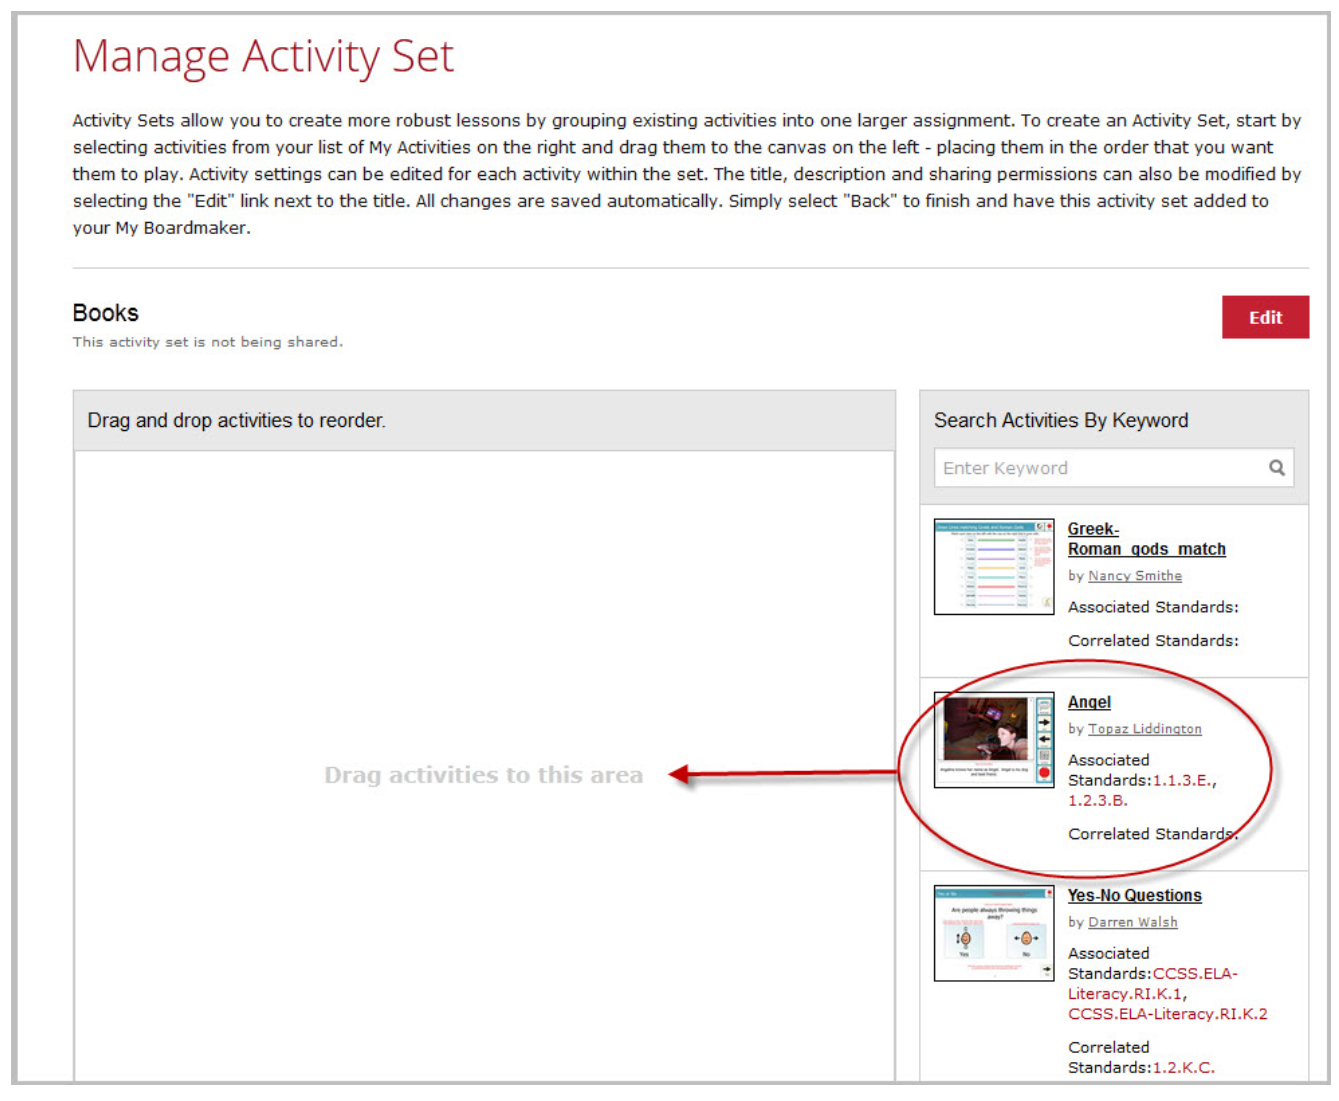 Manage Activity Set